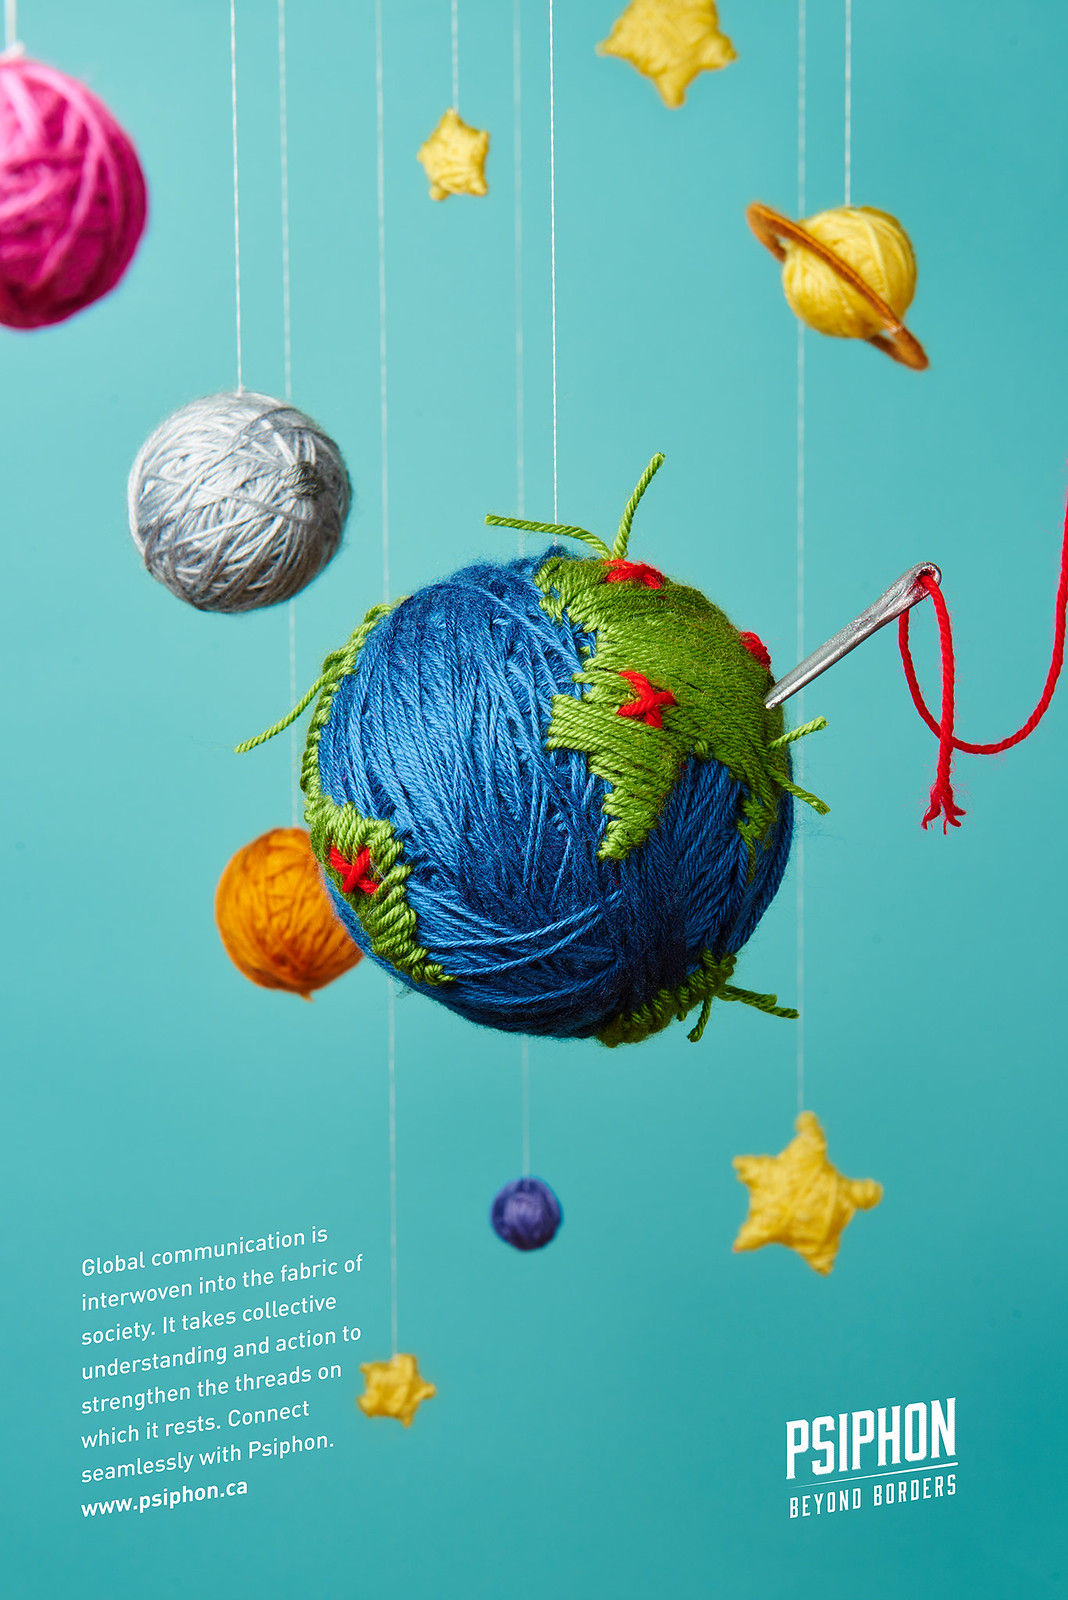 psiphon, yarn posters